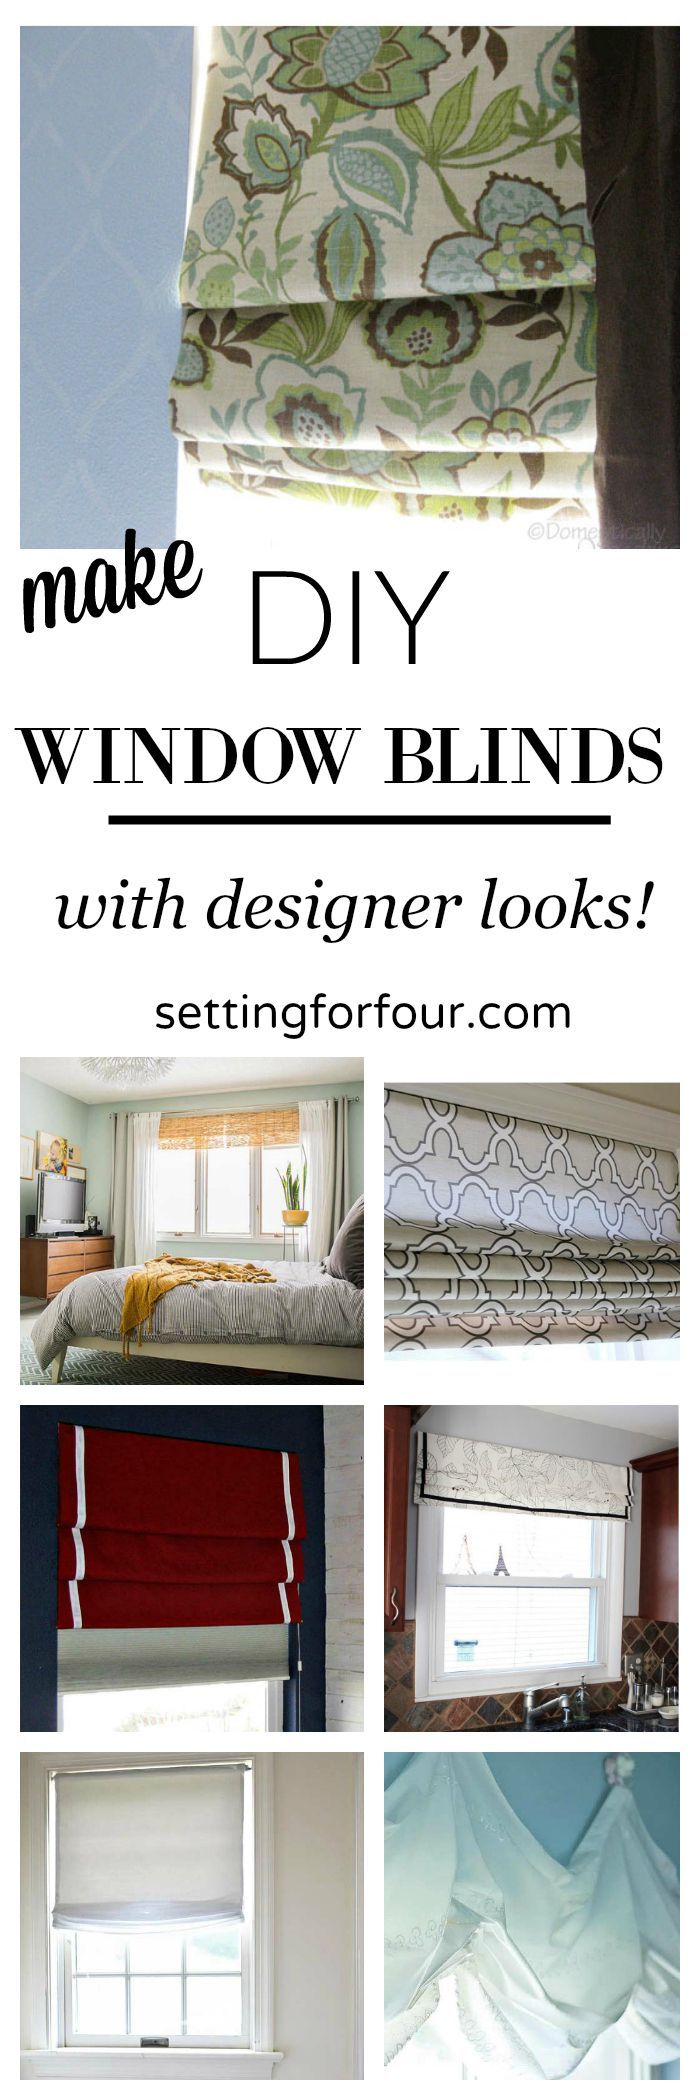 Make gorgeous diy window blinds bloggers best diy ideas see 7 beautiful diy window blinds to make yourself they are the ultimate finishing touch to boring bare windows and will add color and pattern to a room solutioingenieria Image collections